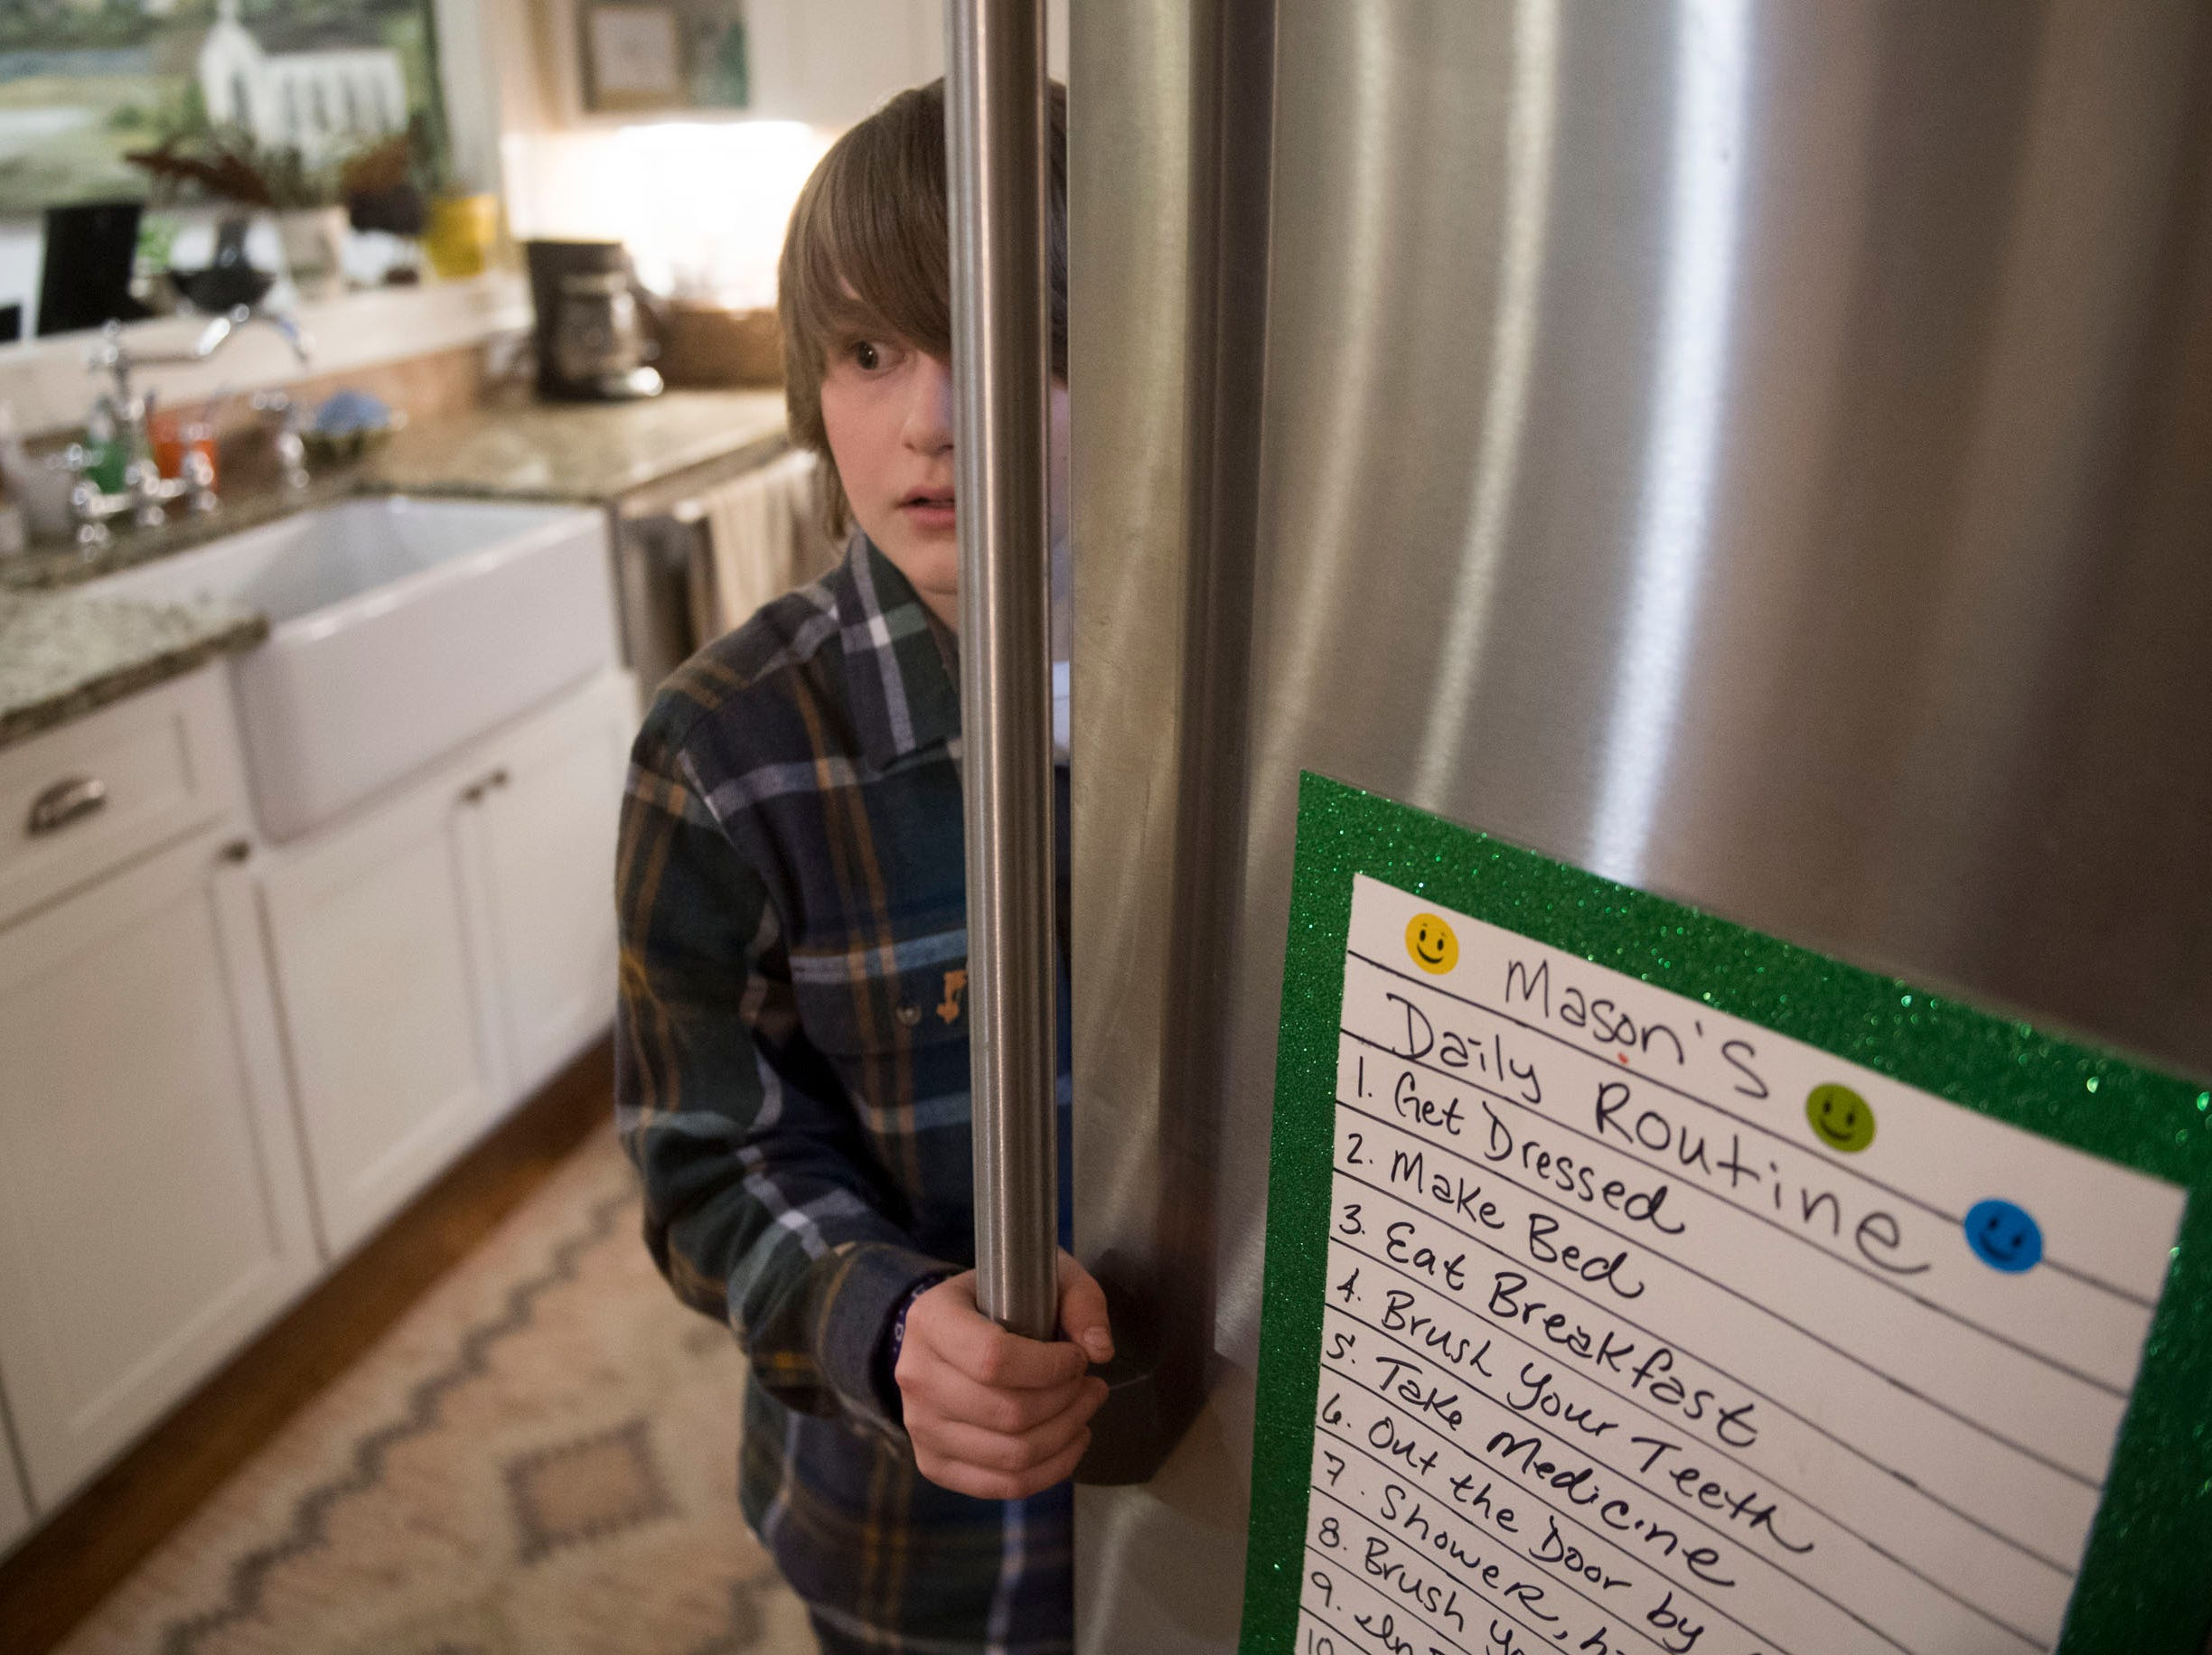 Mason Hall's daily routine is listed on the refrigerator.